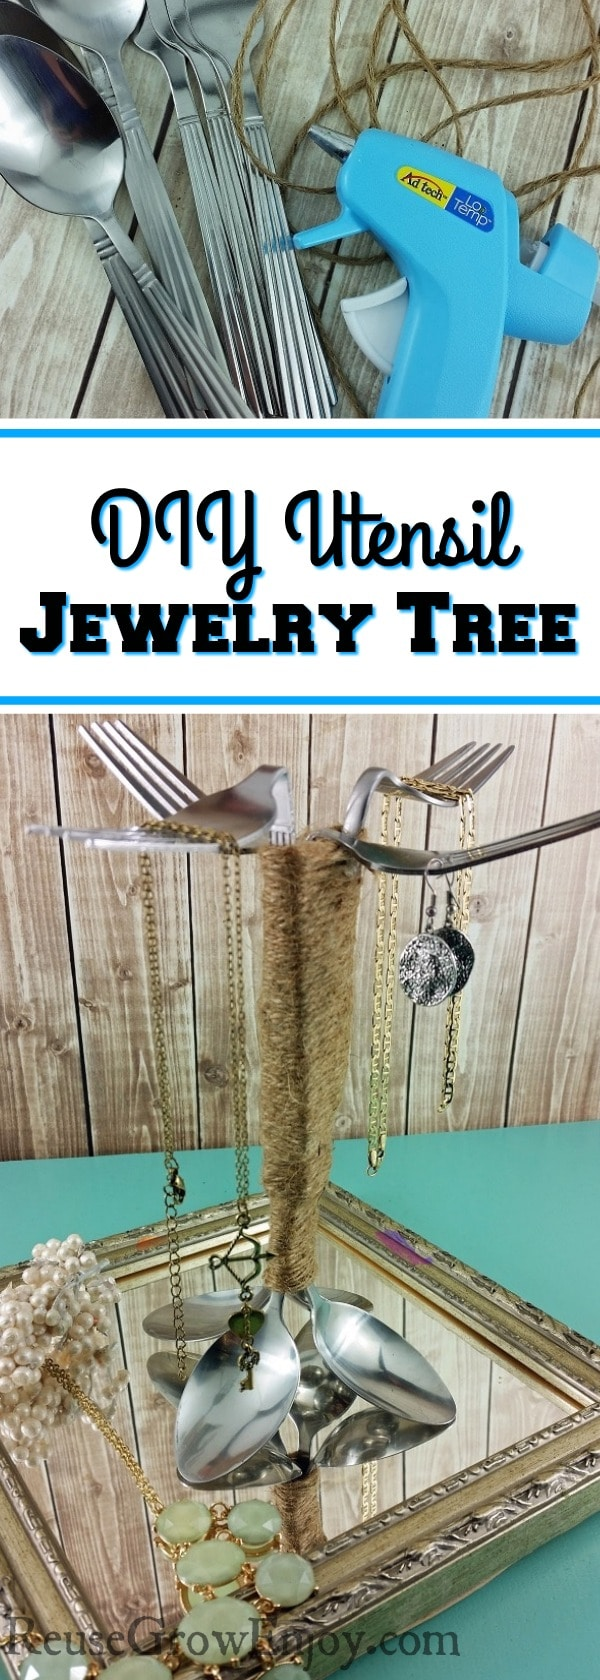 If you have some old utensils that are bent or rusted, I have a project for you to try. It is for this easy DIY Repurposed Utensil Jewelry Tree!